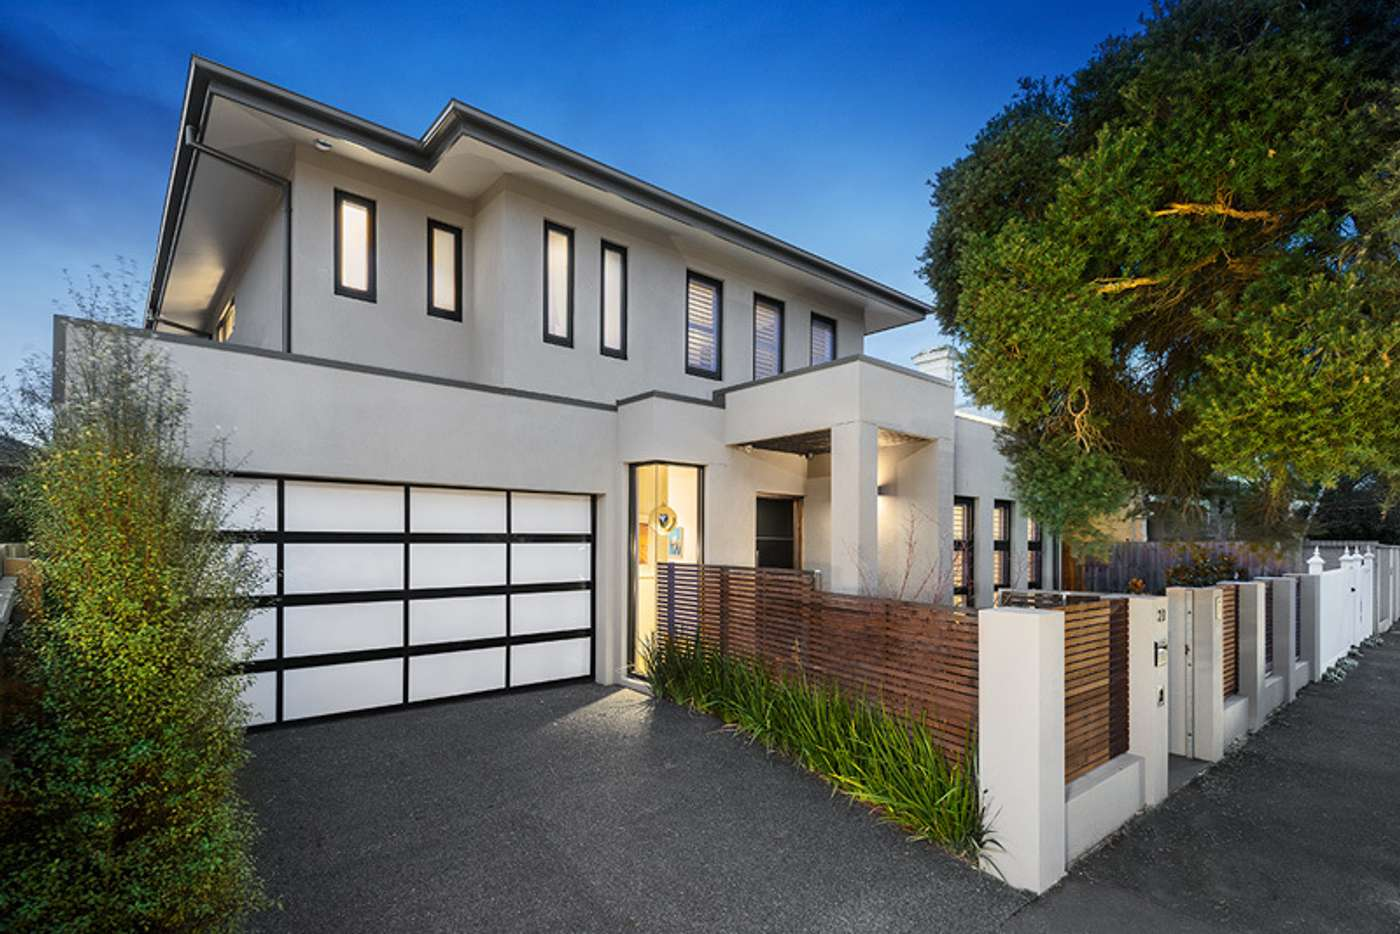 Main view of Homely house listing, 20 Sycamore Grove, St Kilda East VIC 3183